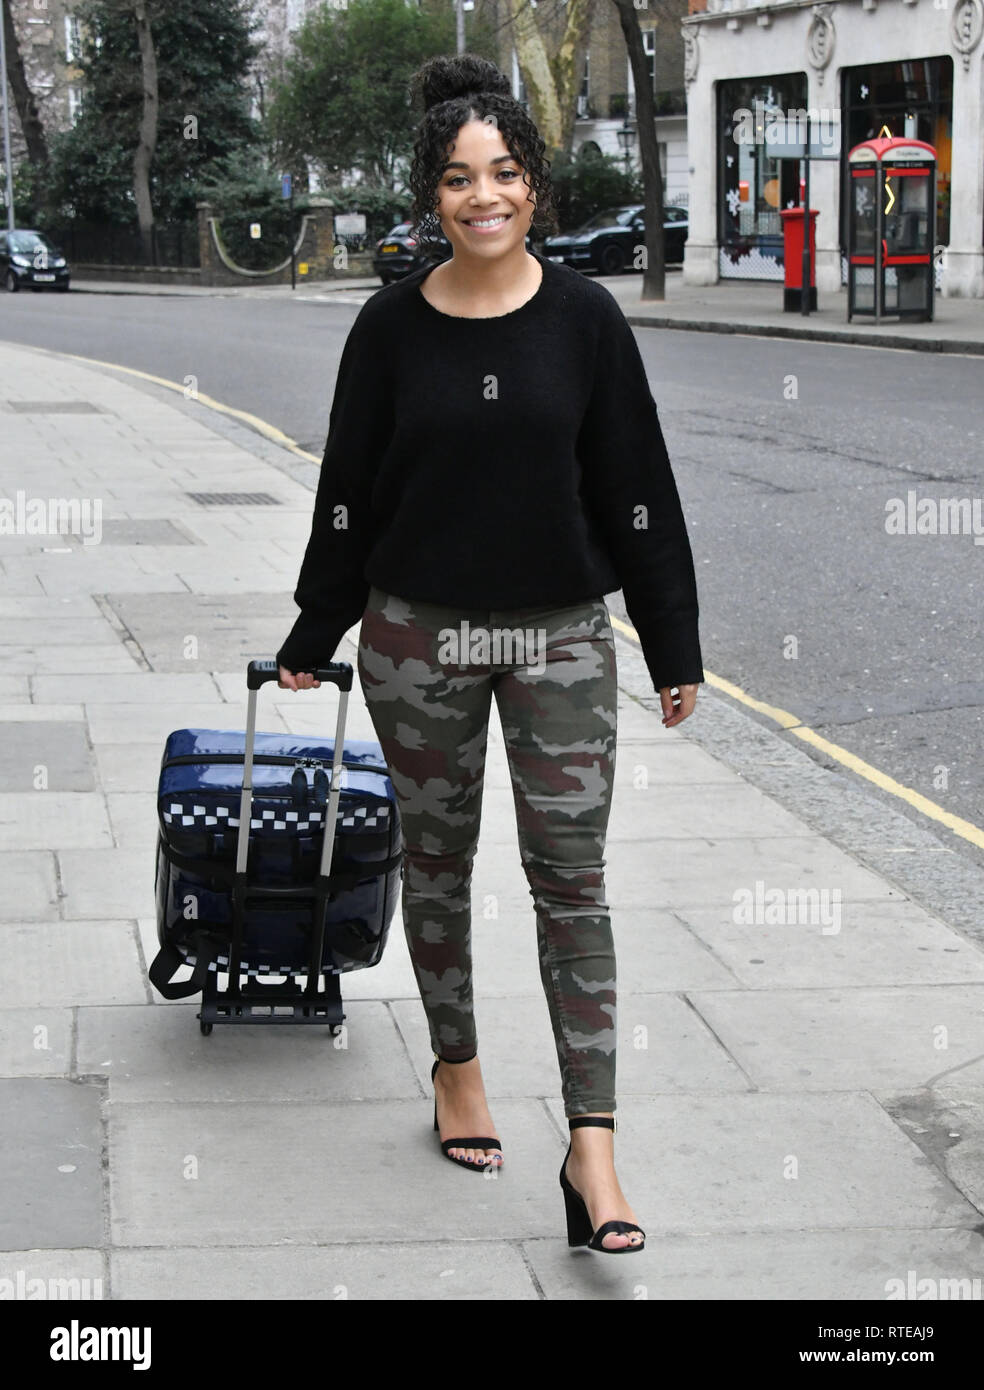 London, UK. 01st March, 2019. Leonie Elliott, (Nurse Lucille Anderson in the BBC's 'Call the Midwife') at launch of new UK standardised home delivery bag for midwives, on behalf of the maternity charity Baby Lifeline, at Sub-Zero & Wolf Showroom.  Baby Lifeline developed the new bag, along with its contents and processes, in conjunction with a leading expert clinical group. Six NHS Trusts will be trialling the bag and contents over the next few months. Credit: Nils Jorgensen/Alamy Live News - Stock Image